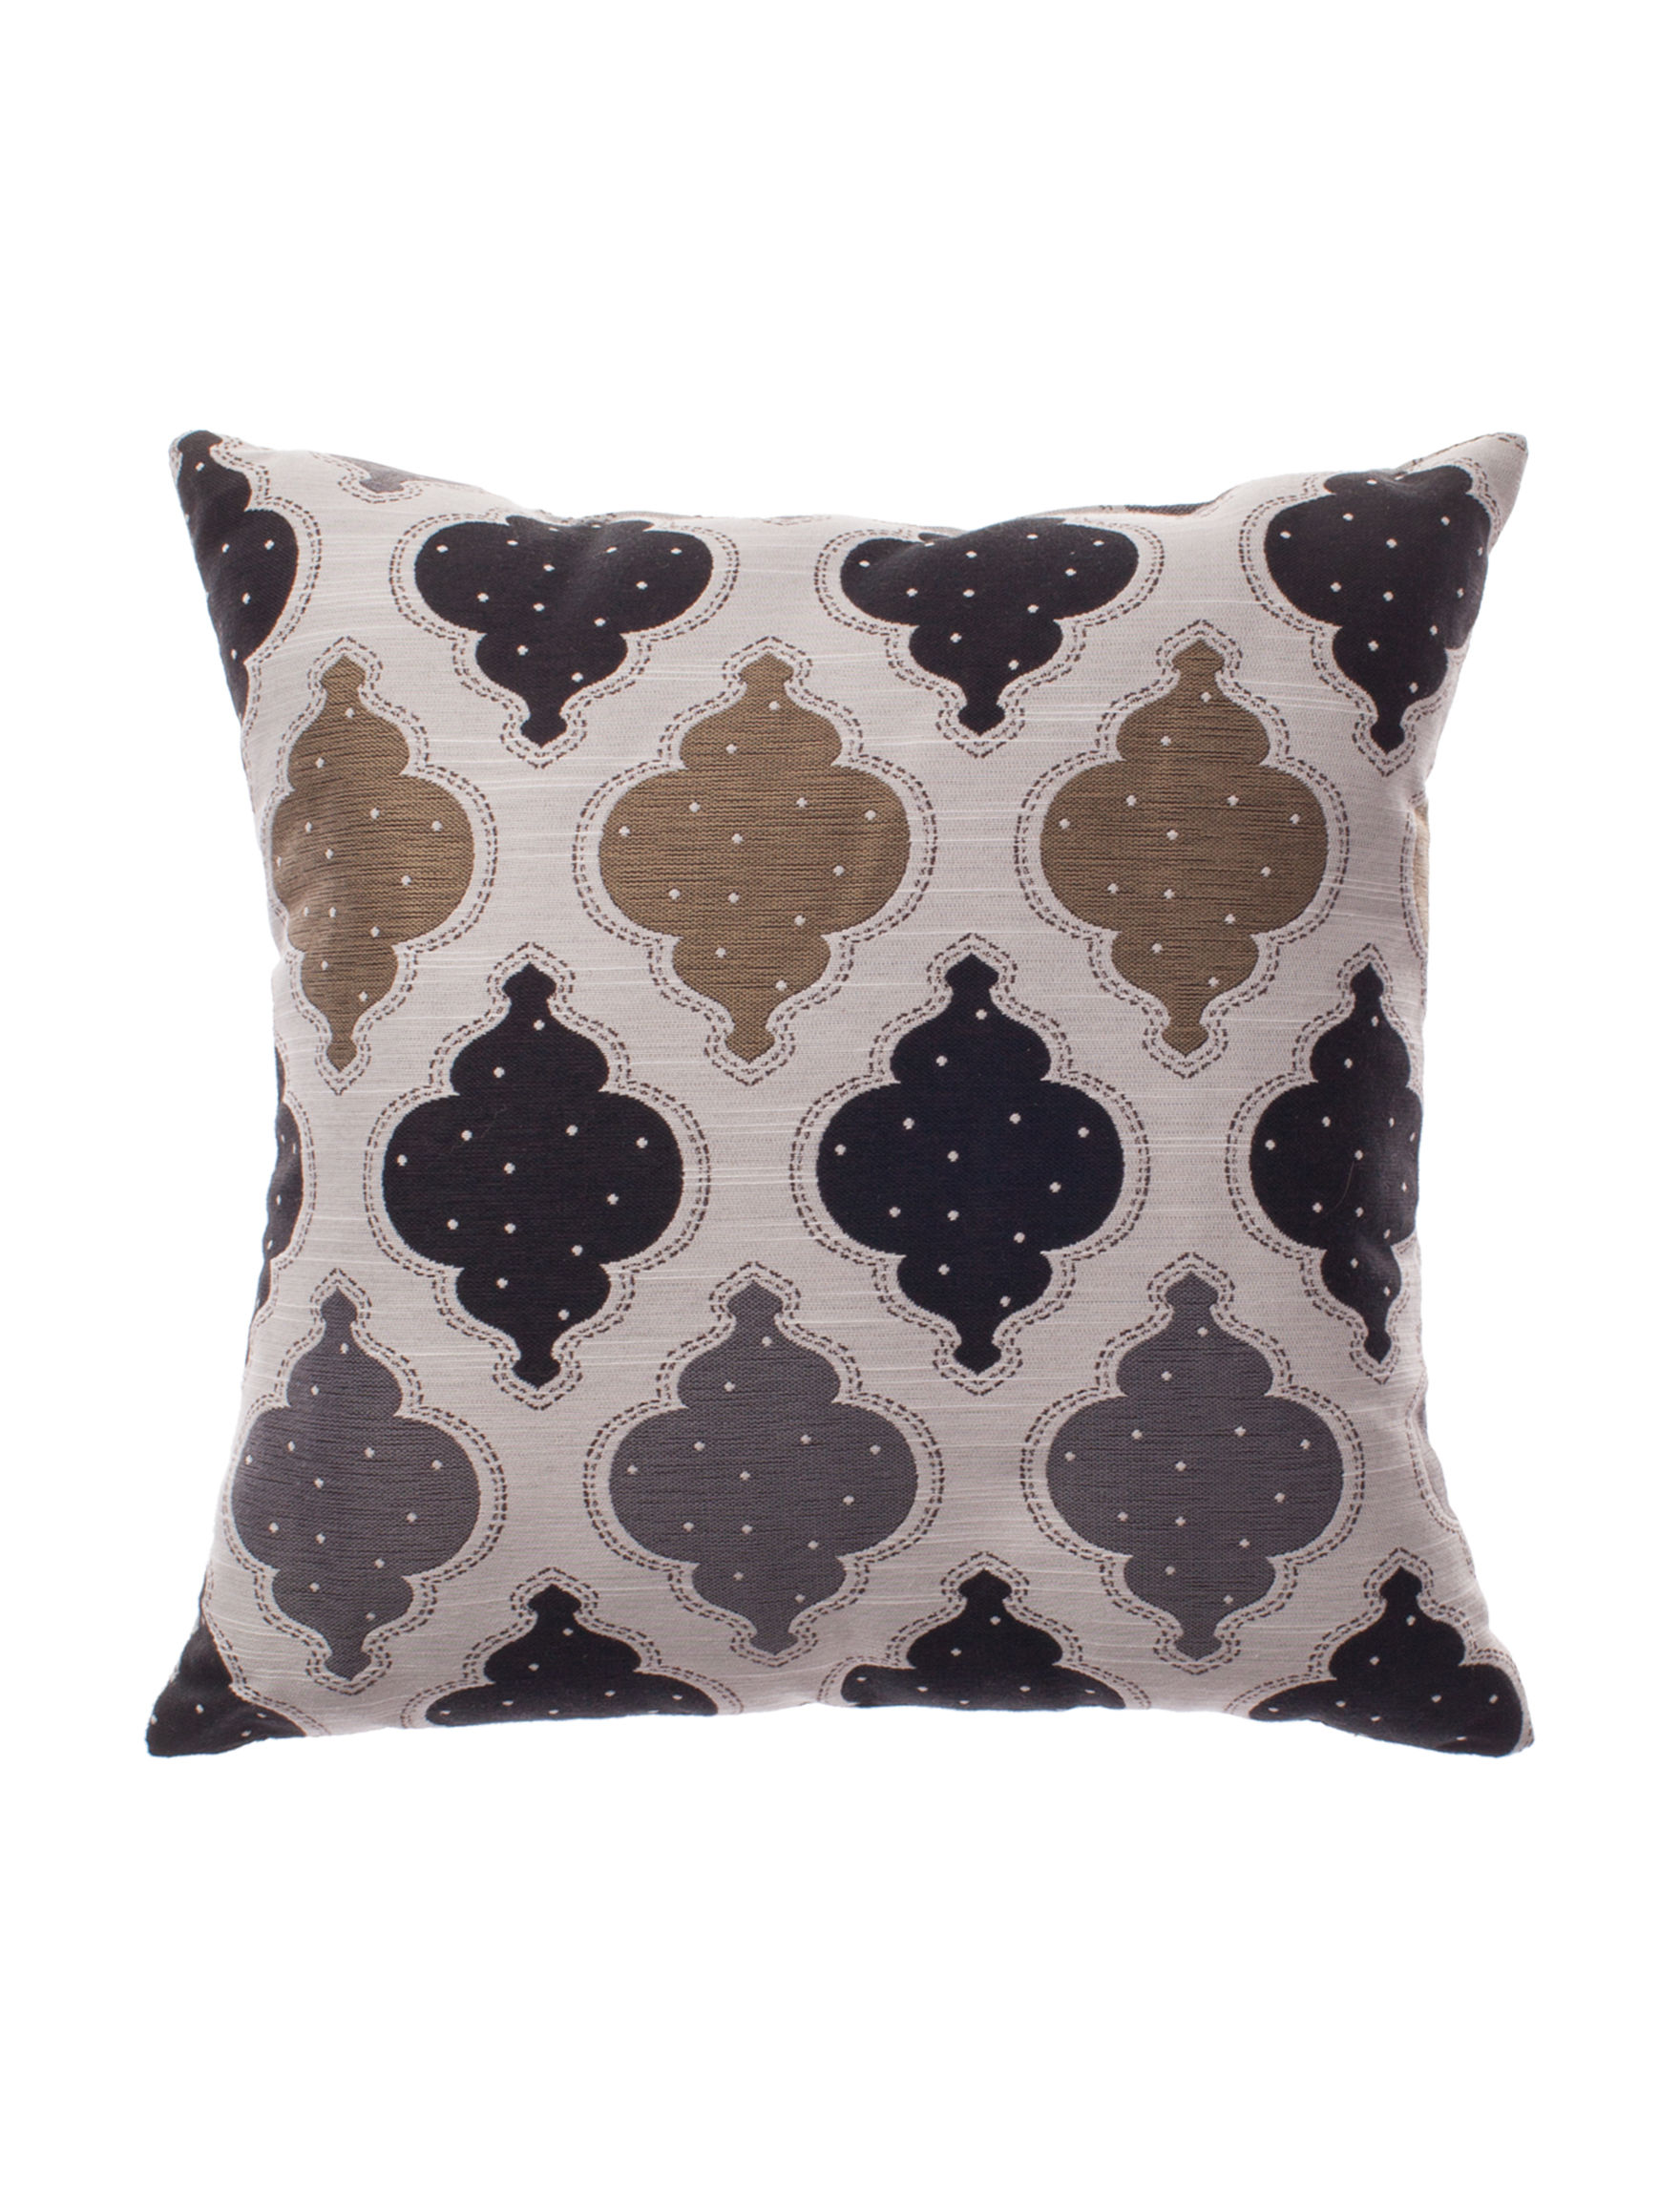 Home Fashions International Black Multi Decorative Pillows